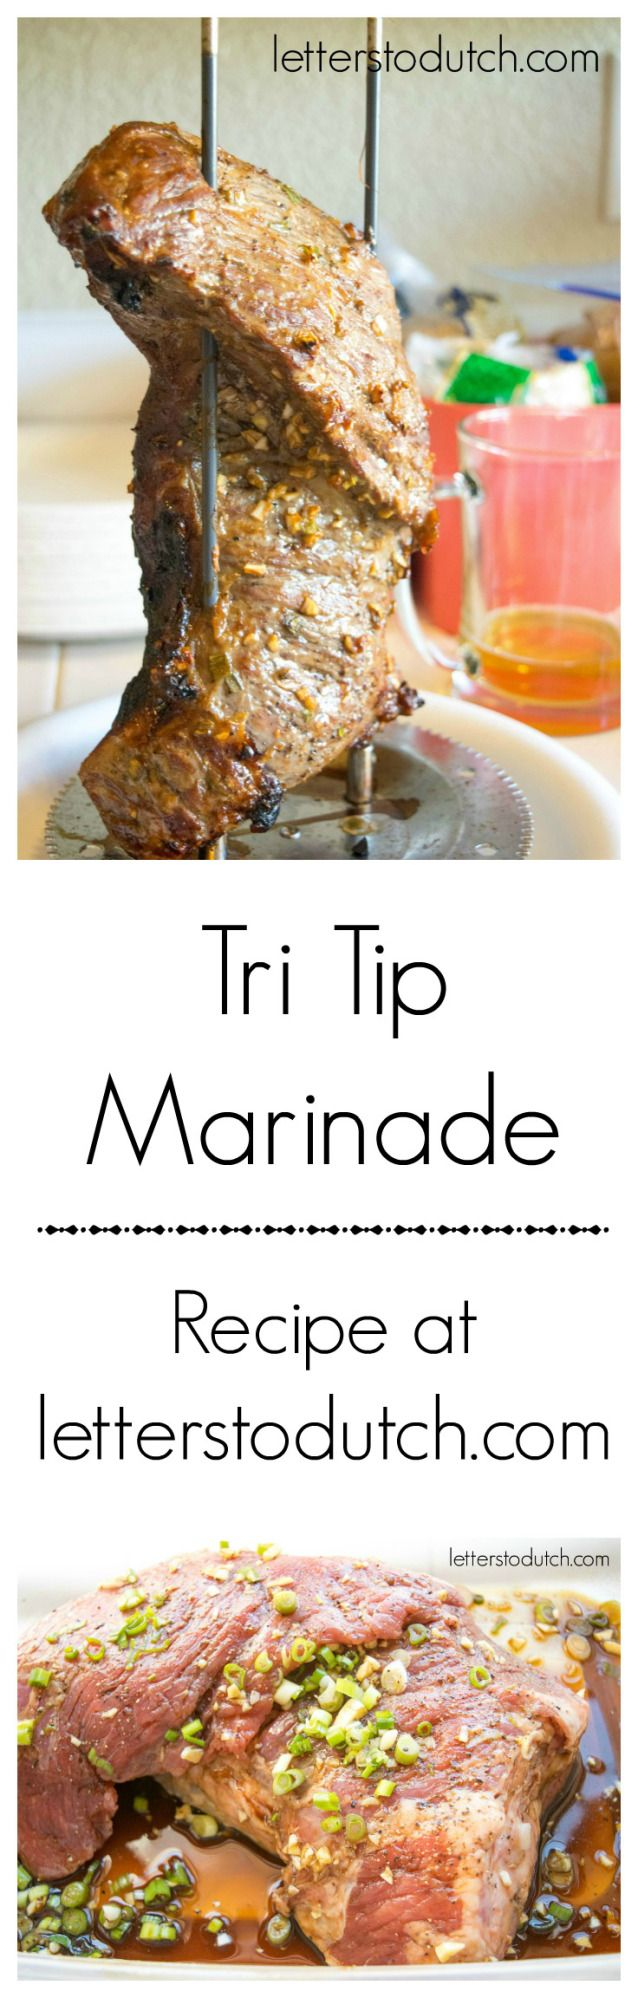 Savory Tri-Tip Marinade #meat #marinade #tritip #recipe #food #savory #yummy #delicious #letterstodutch #bbq #grill #juicy #asian #flavor